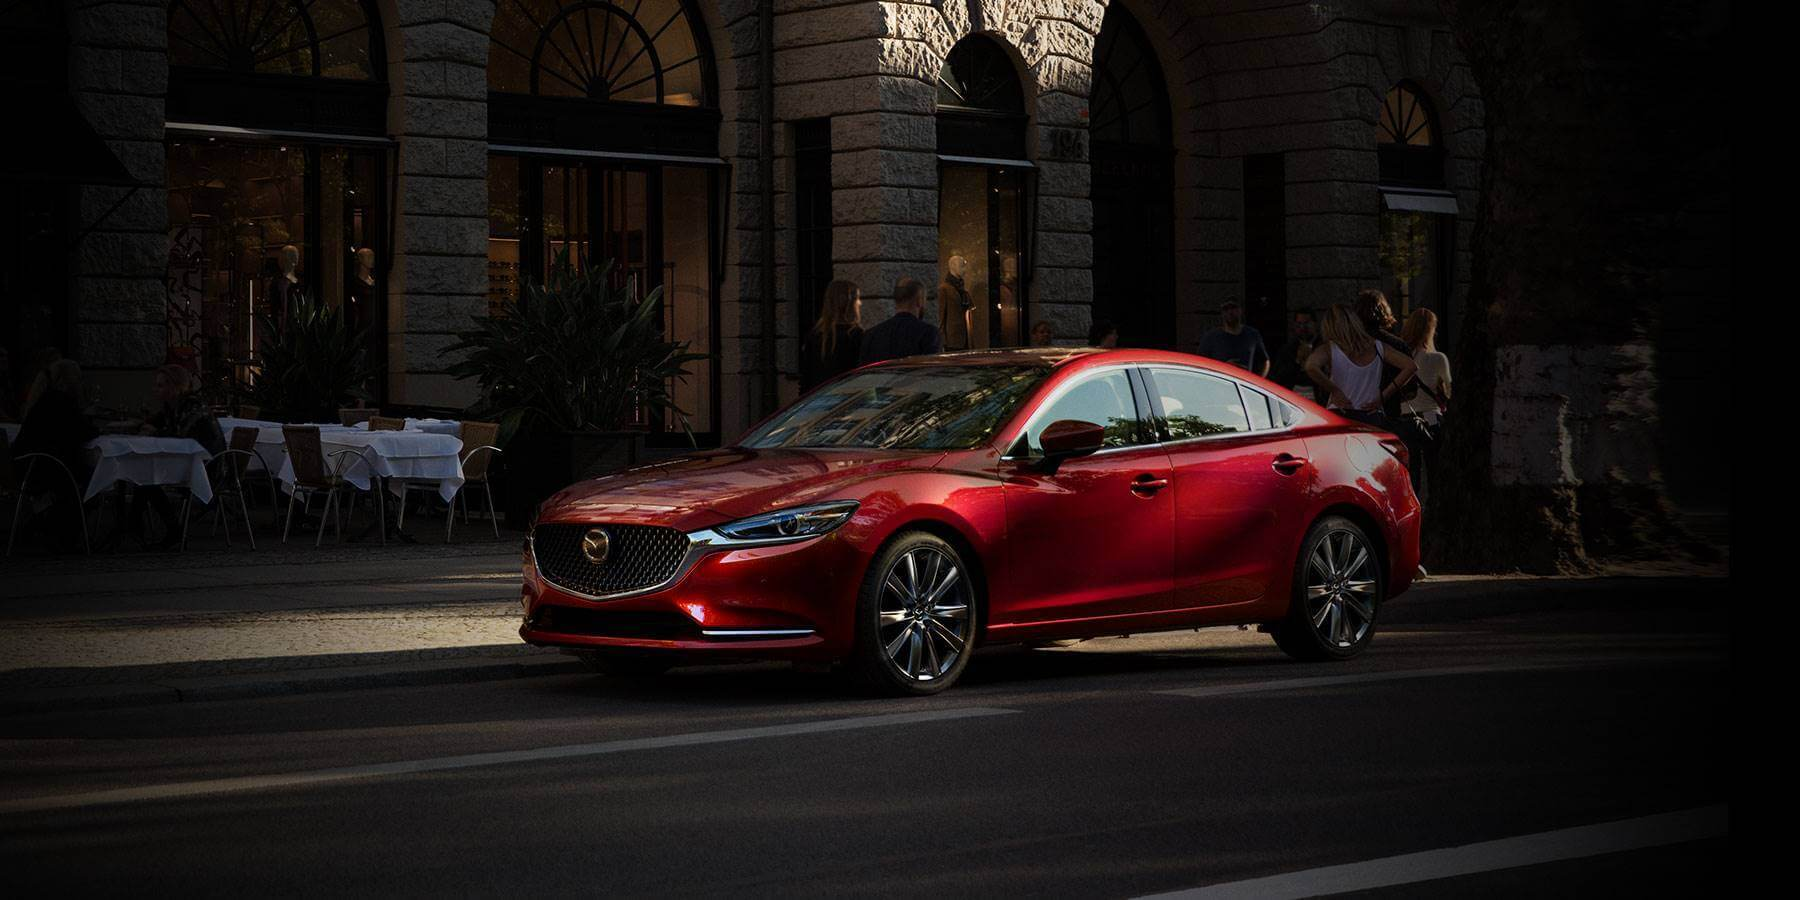 The New 2018 Mazda6 in Peoria, IL